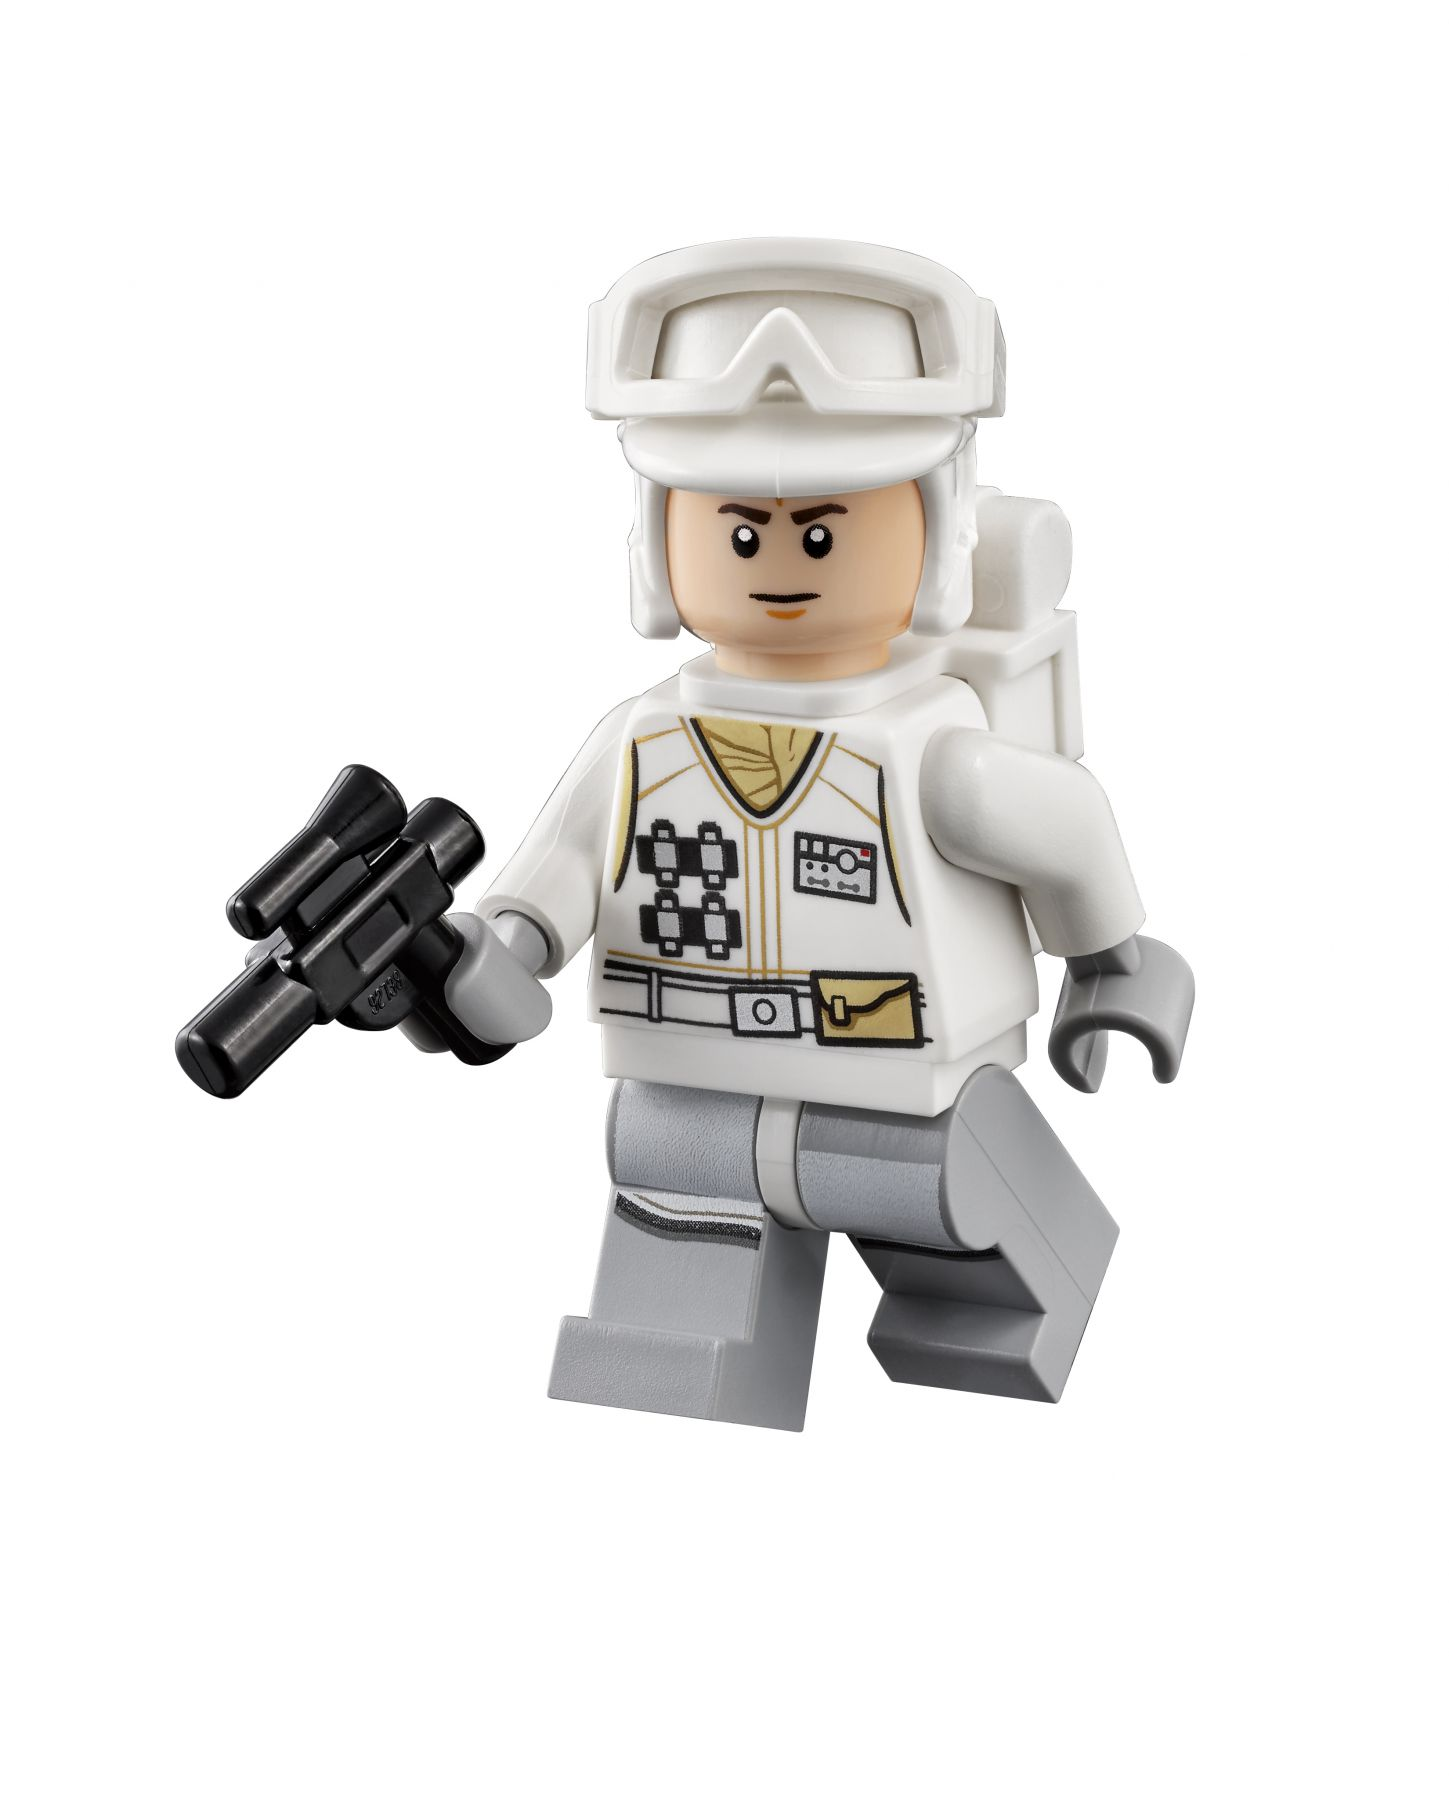 LEGO Star Wars 75098 Angriff auf Hoth™ LEGO-75098-Assault-on-Hoth-Minifigure_06.jpg